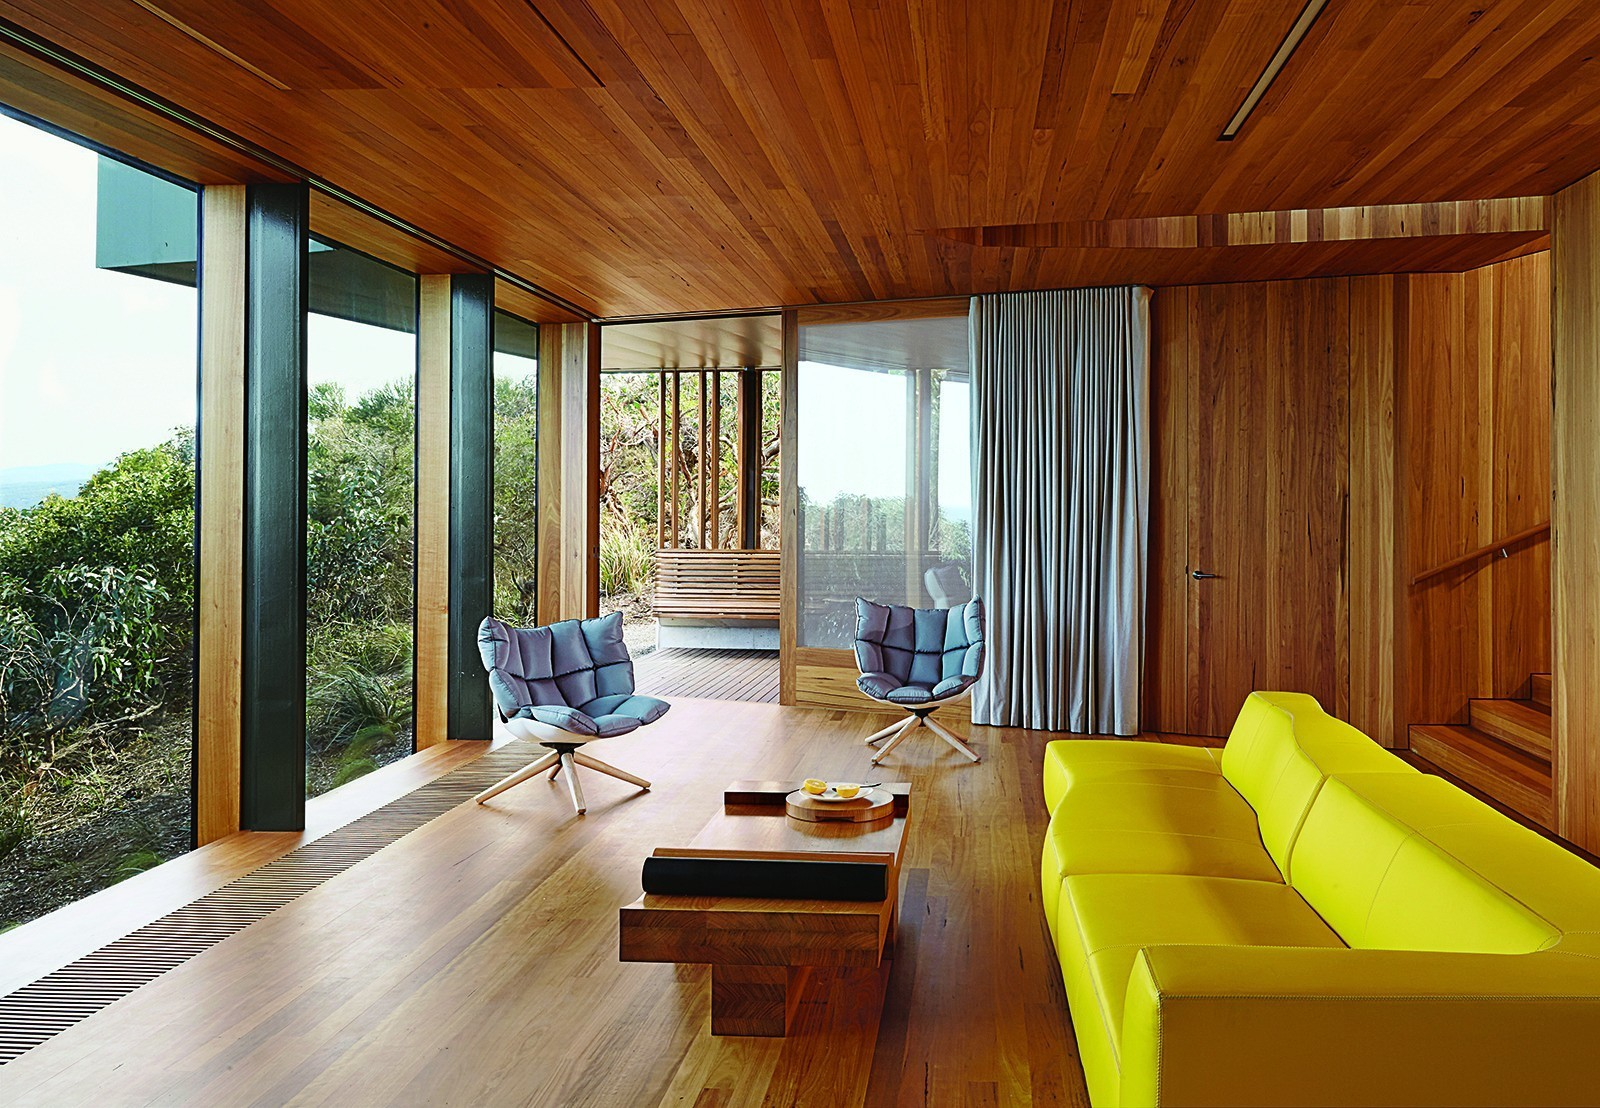 Articles about eucalyptus lined oceanfront home australia on Dwell.com - Dwell